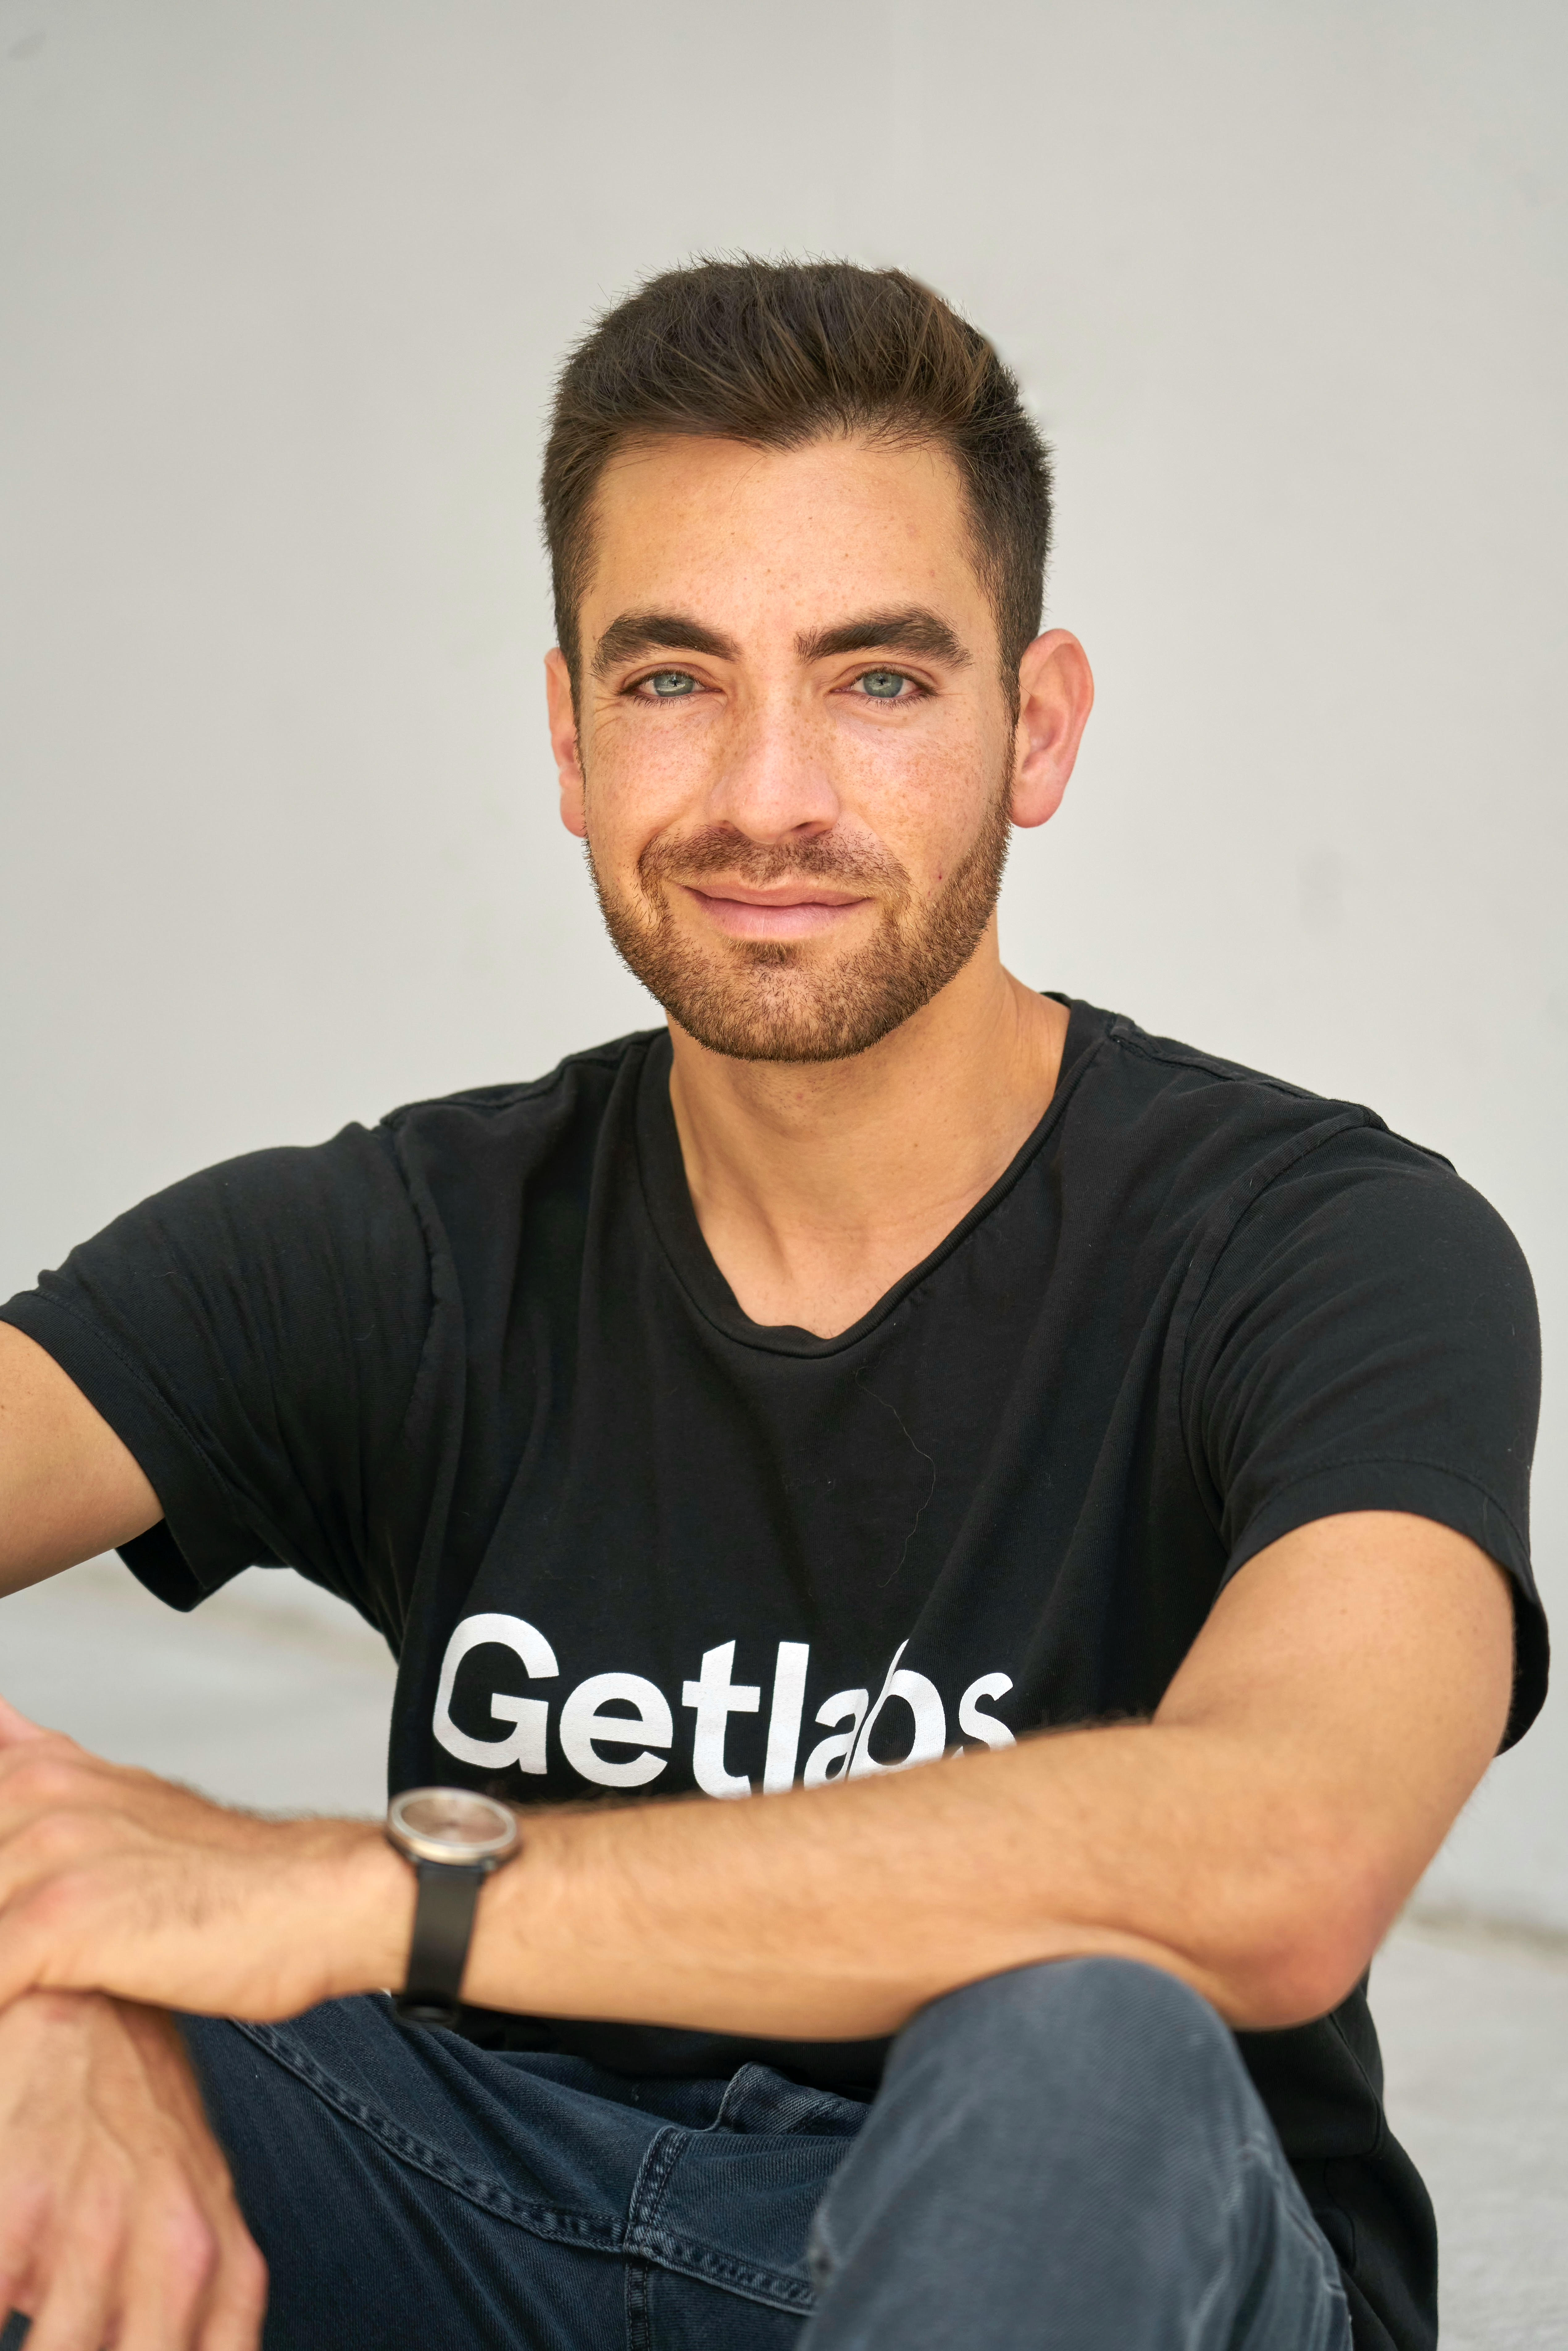 Getlabs, an at-home medical labs company, launches with a $3 million raise